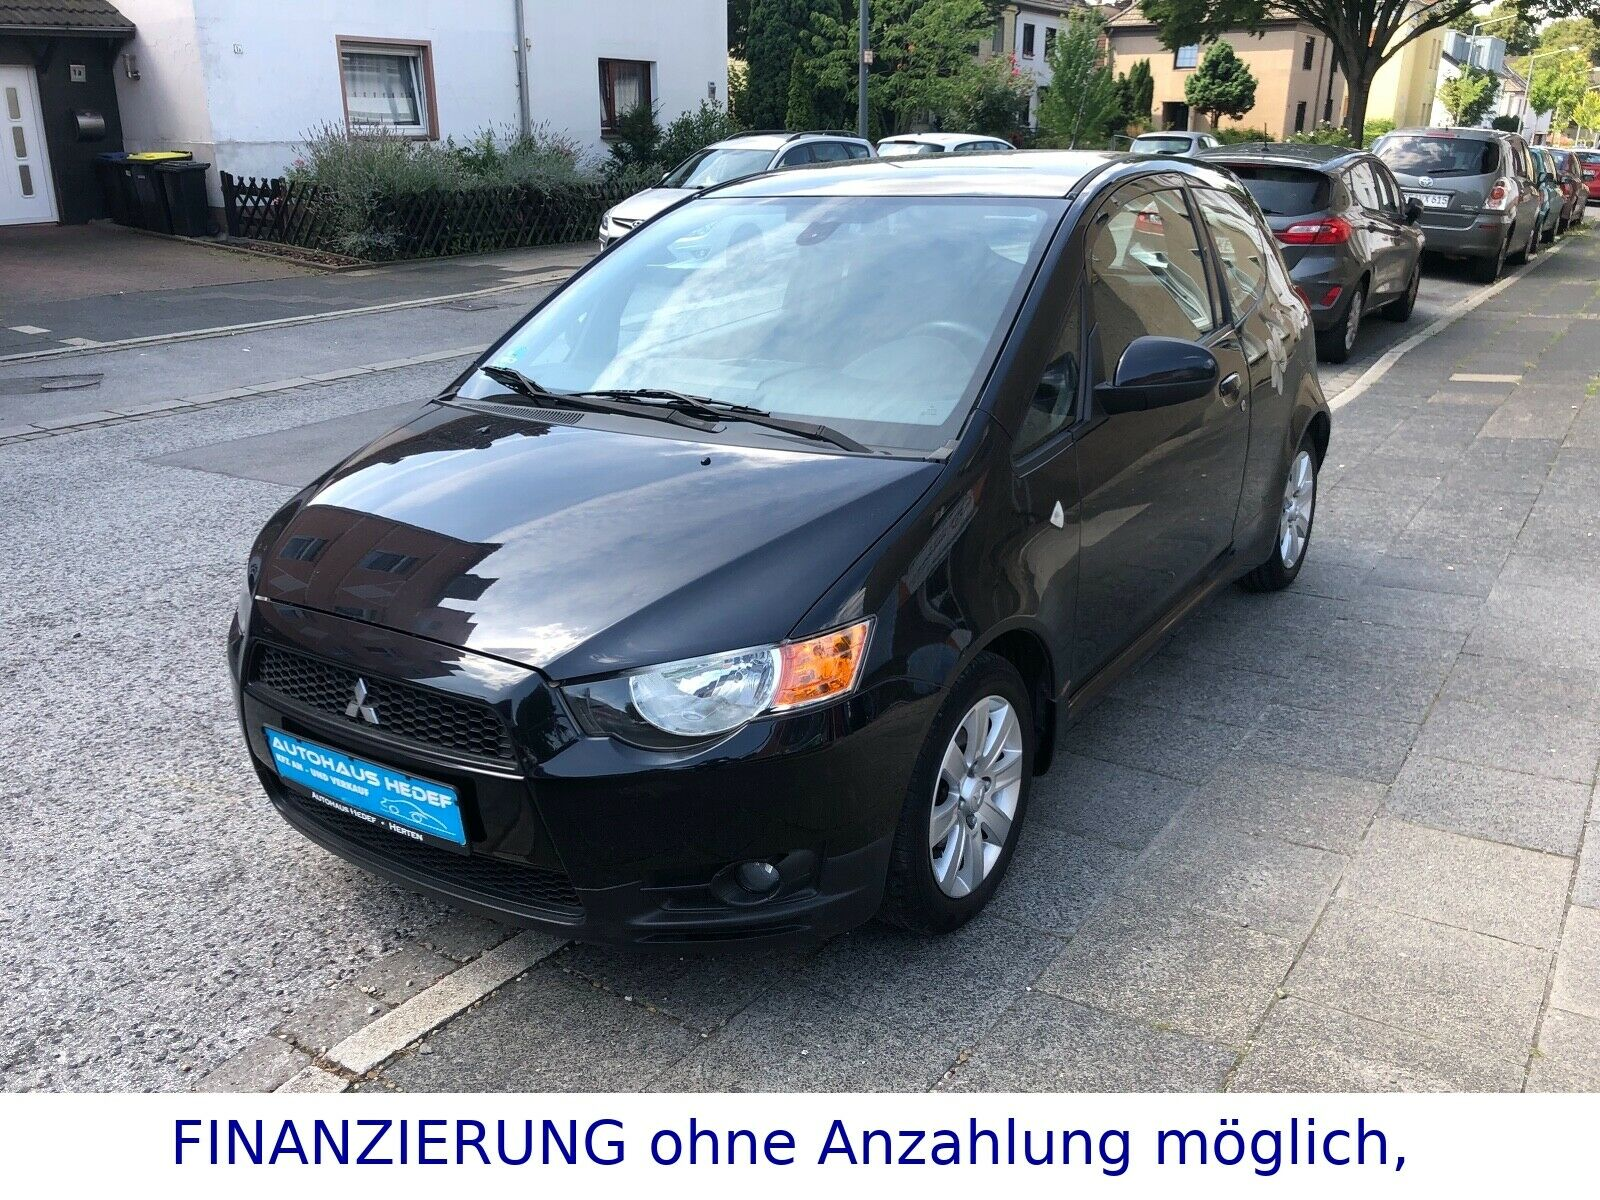 MITSUBISHI Colt 1.3 Motion ClearTec - 1 Hand - Wening Km -